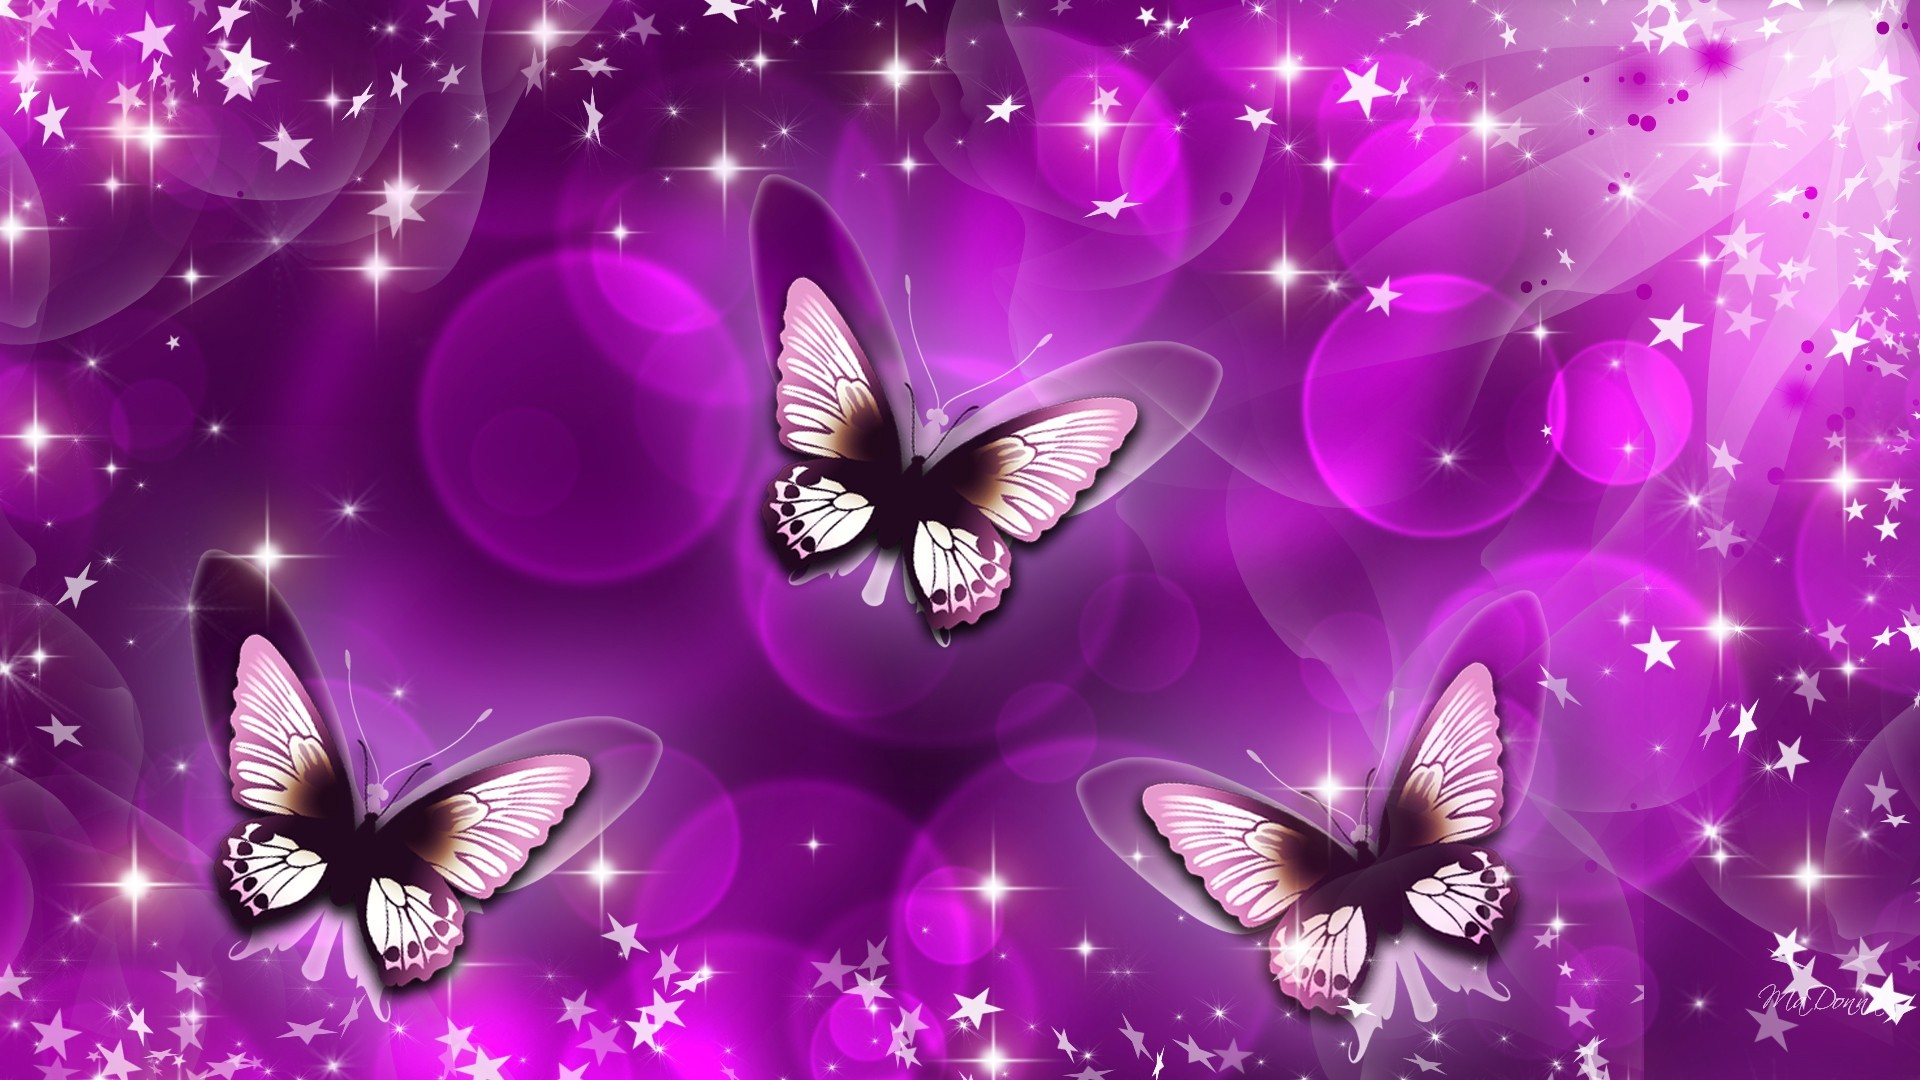 … sparkly erfly wallpaper the wallpaper …